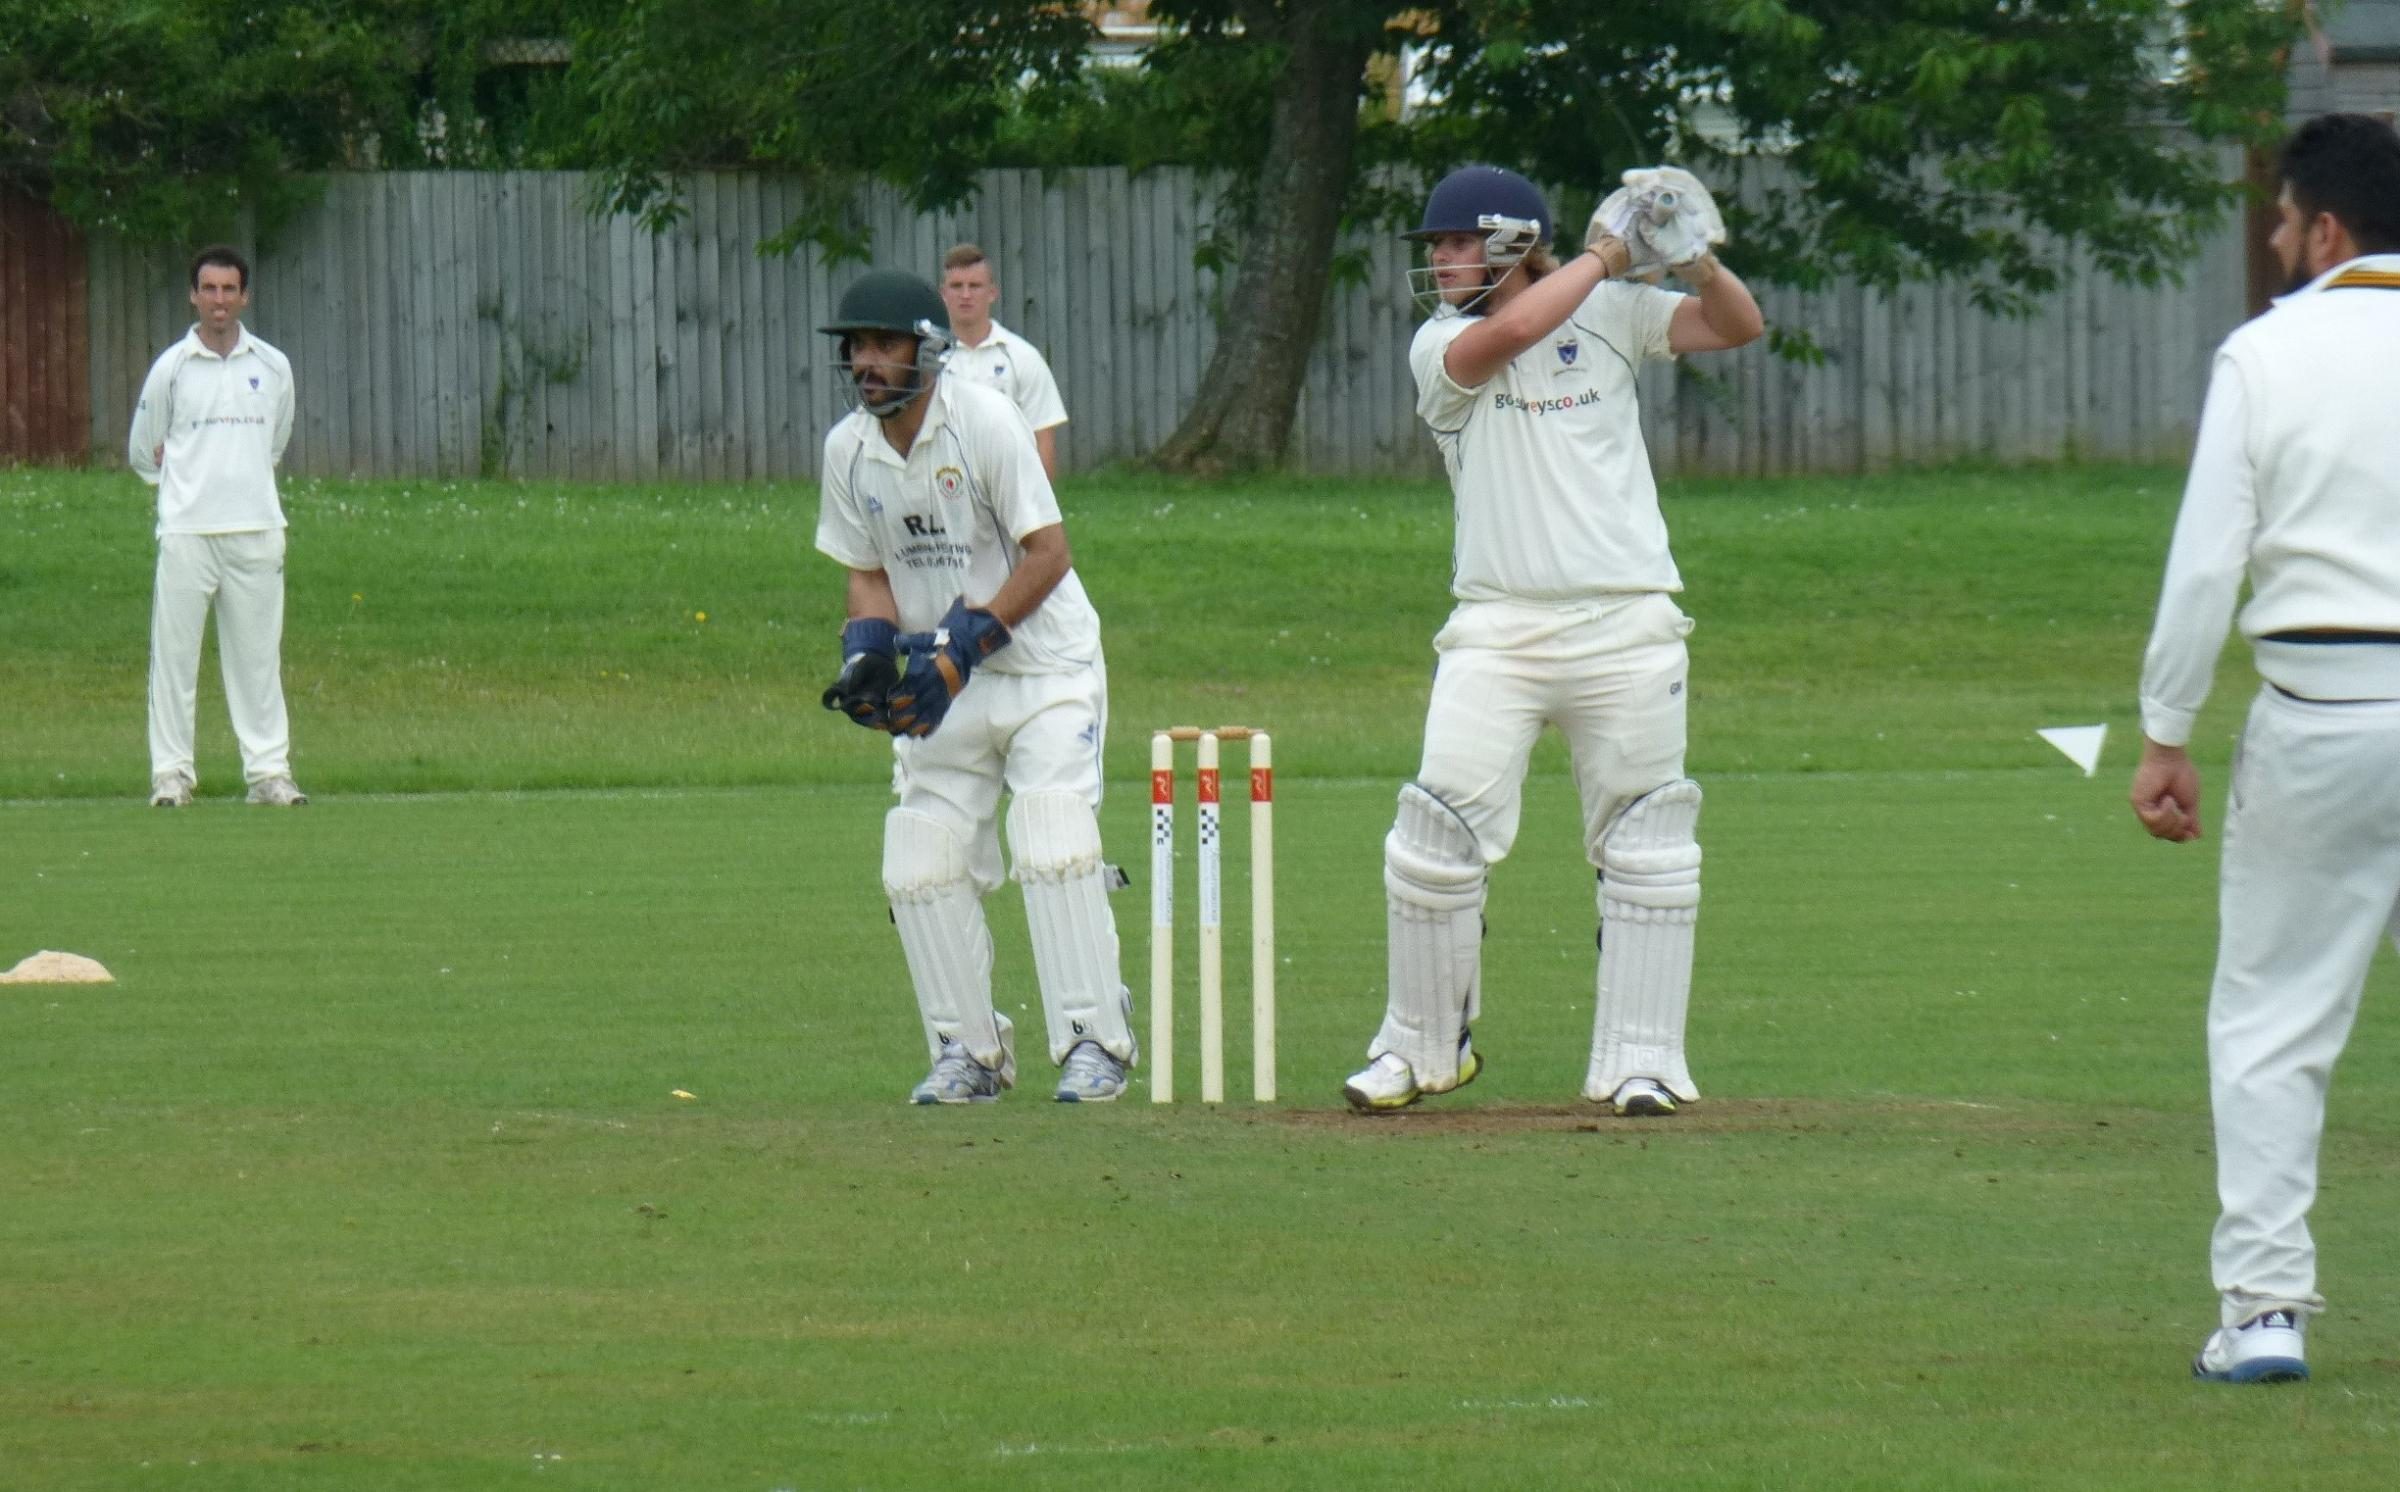 TOP KNOCK: Opener Nathan Piddock posted his side's highest score as Dinas Powys Cricket Club Firsts recorded a remarkable victory in a low-scoring match with Cardiff Gymkhana at Bryn-y-Don.